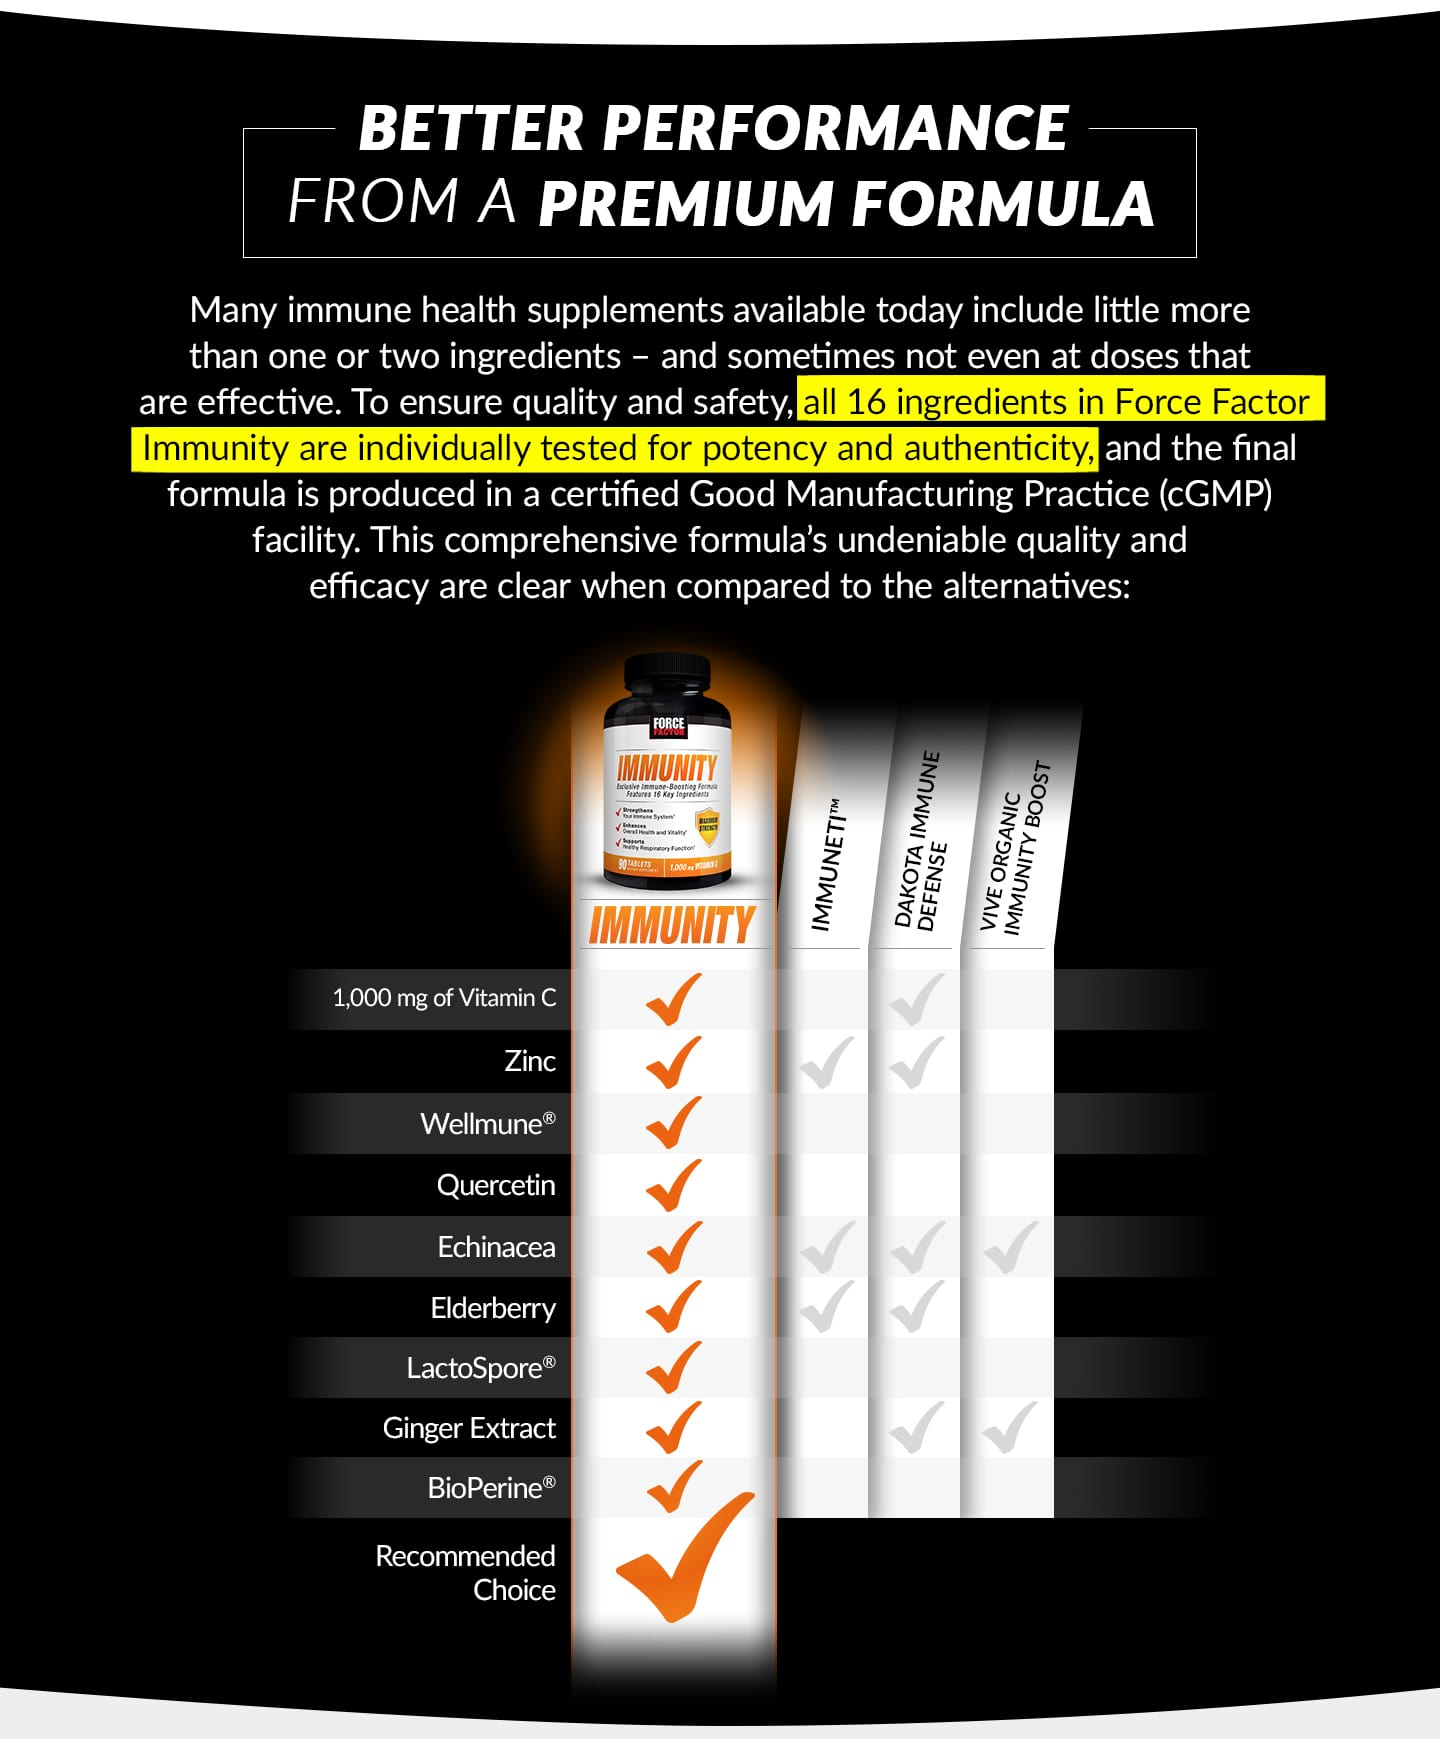 BETTER PERFORMANCE FROM A PREMIUM FORMULA. Many immune health supplements available today include little more than one or two ingredients – and sometimes not even at doses that are effective. To ensure quality and safety, all 16 ingredients in Force Factor Immunity are individually tested for potency and authenticity, and the final formula is produced in a certified Good Manufacturing Practice (cGMP) facility. This comprehensive formula's undeniable quality and efficacy are clear when compared to the alternatives: